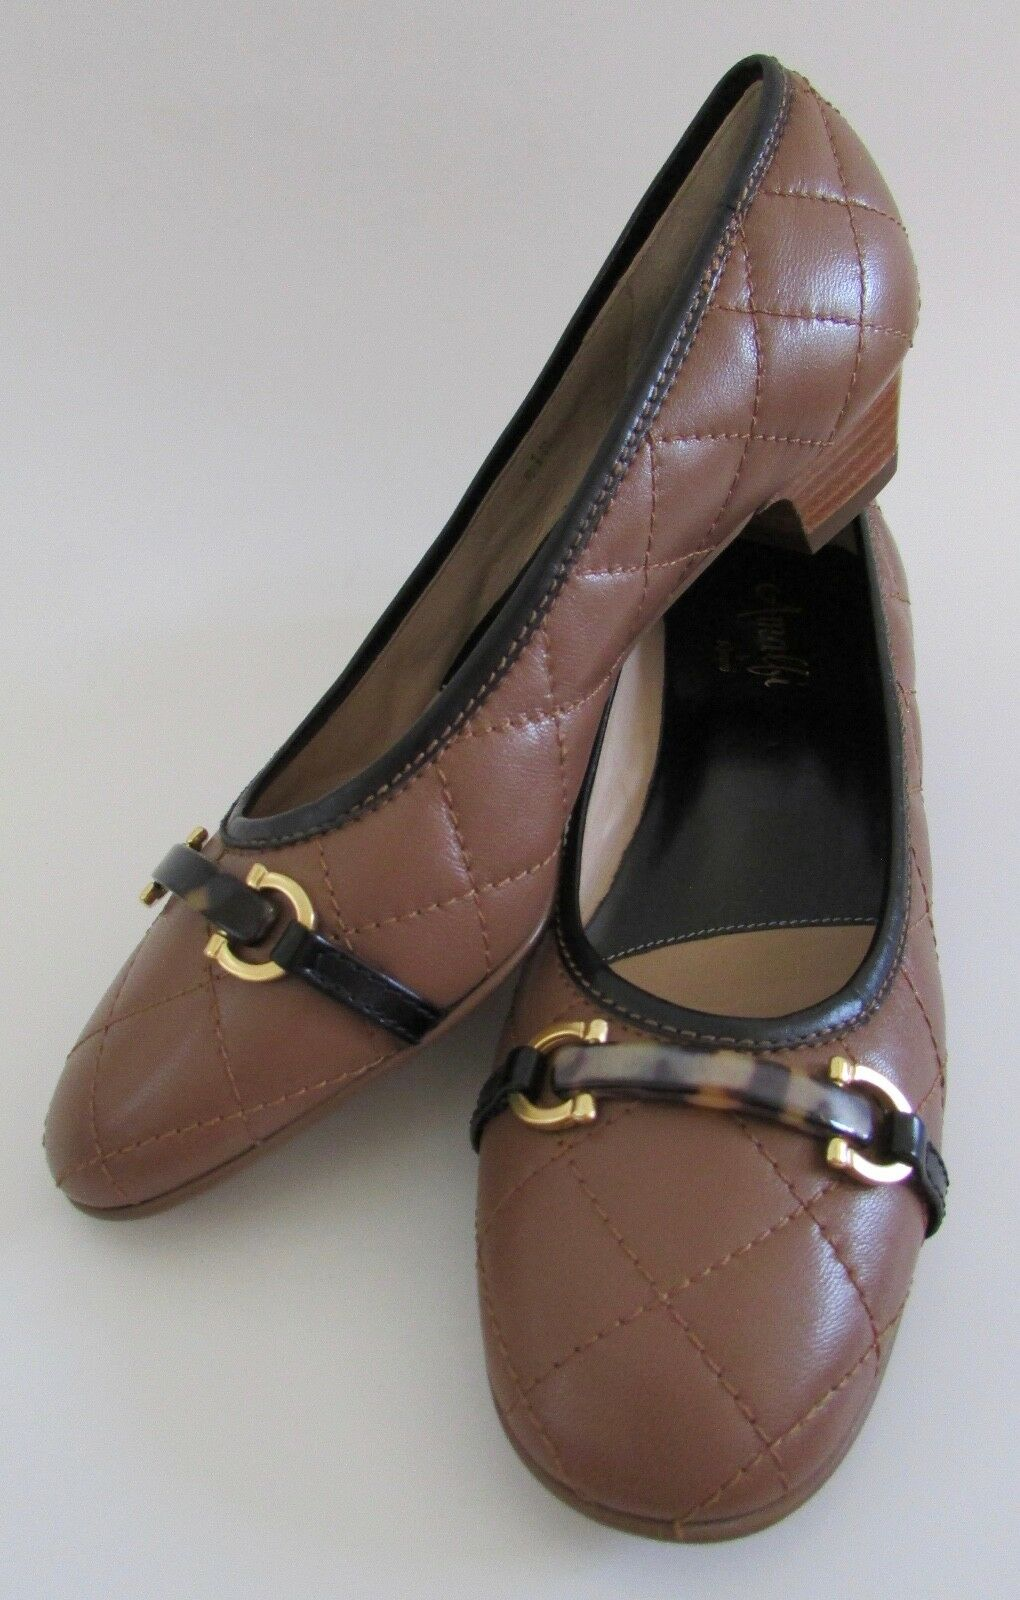 Amalfi by Rangoni Italy Quilted Leather Tortoise Horsebit Ballet Pumps Sz Sz Pumps 8.5 65032a